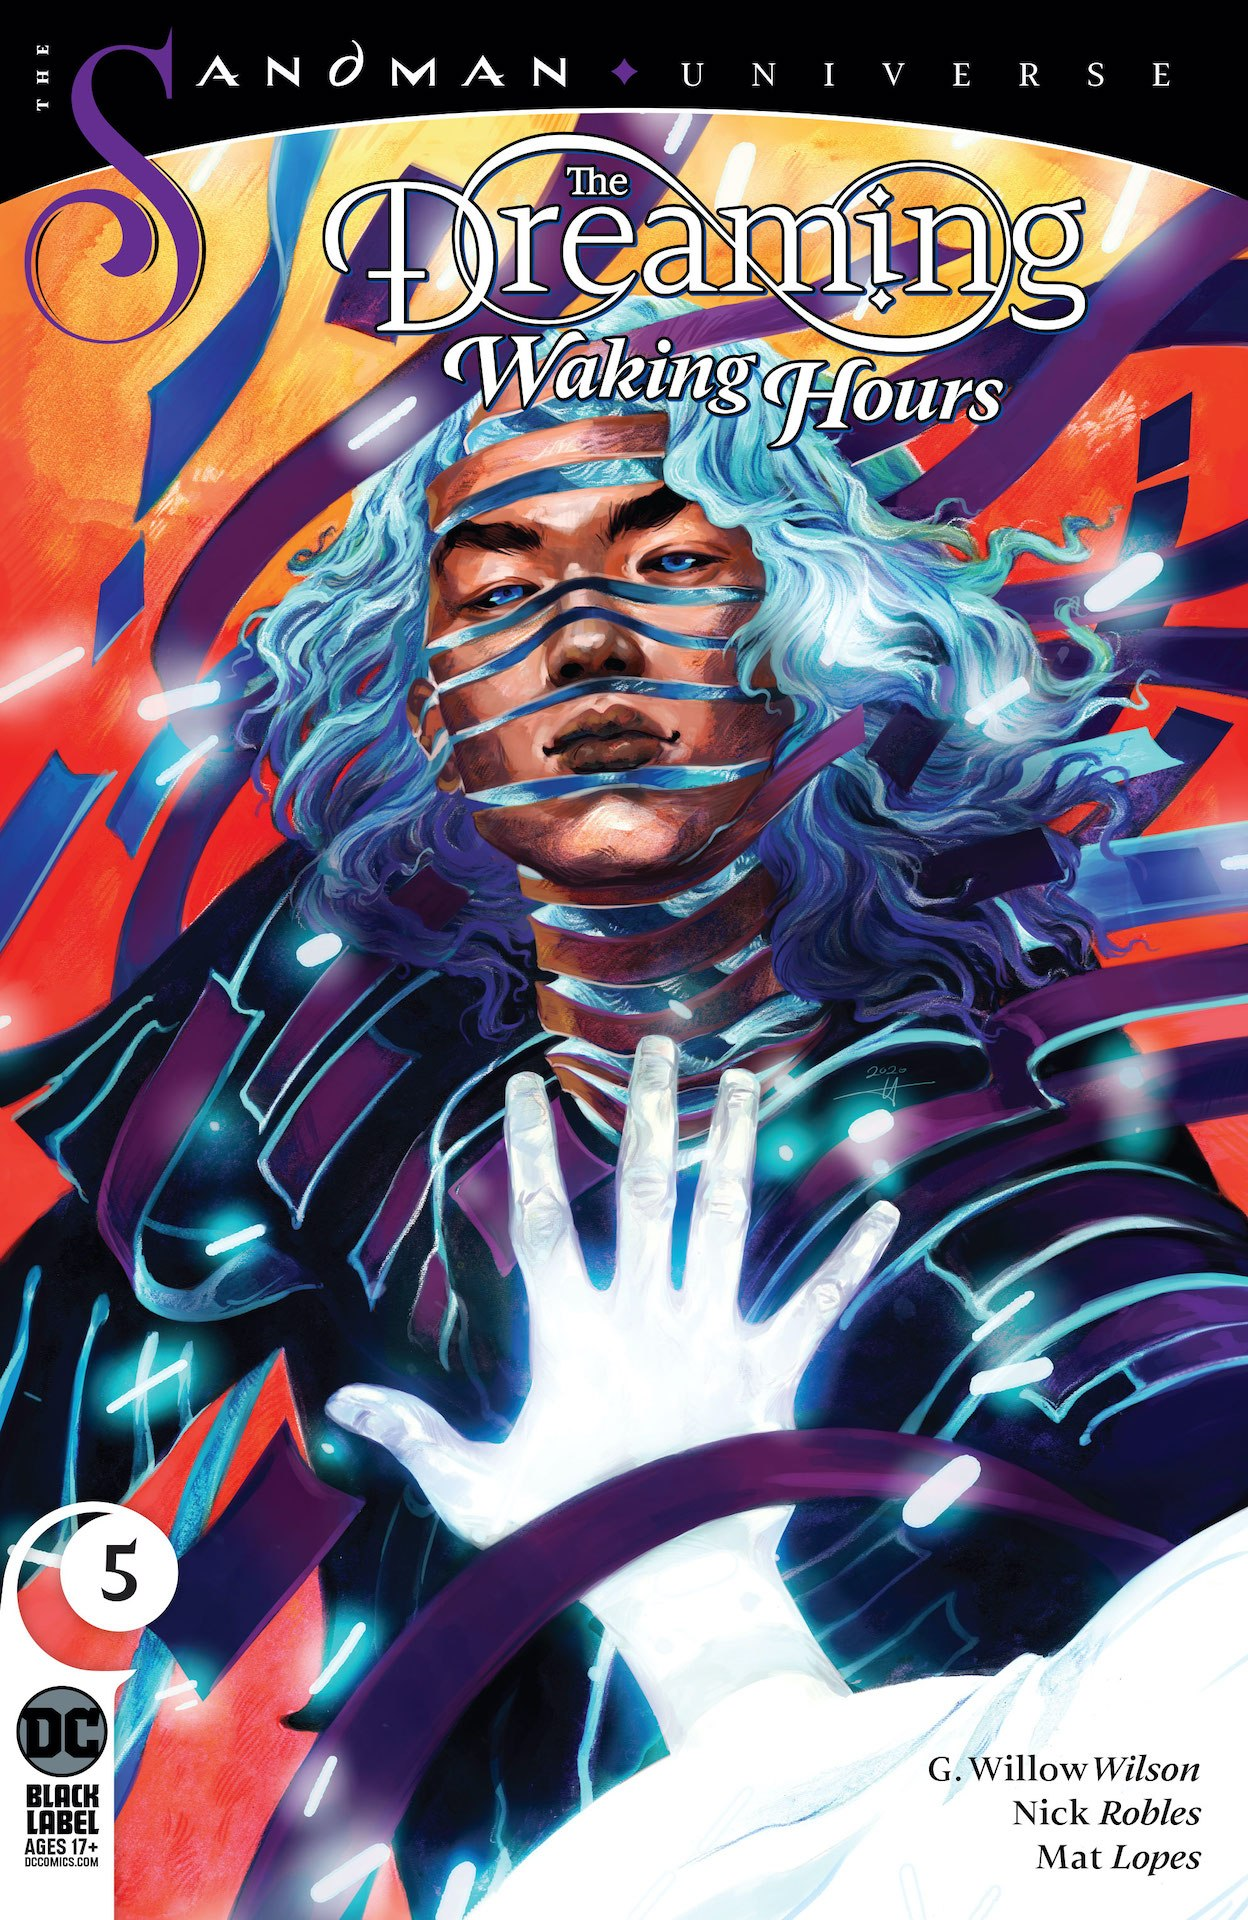 The Dreaming: Waking Hours #5 preview